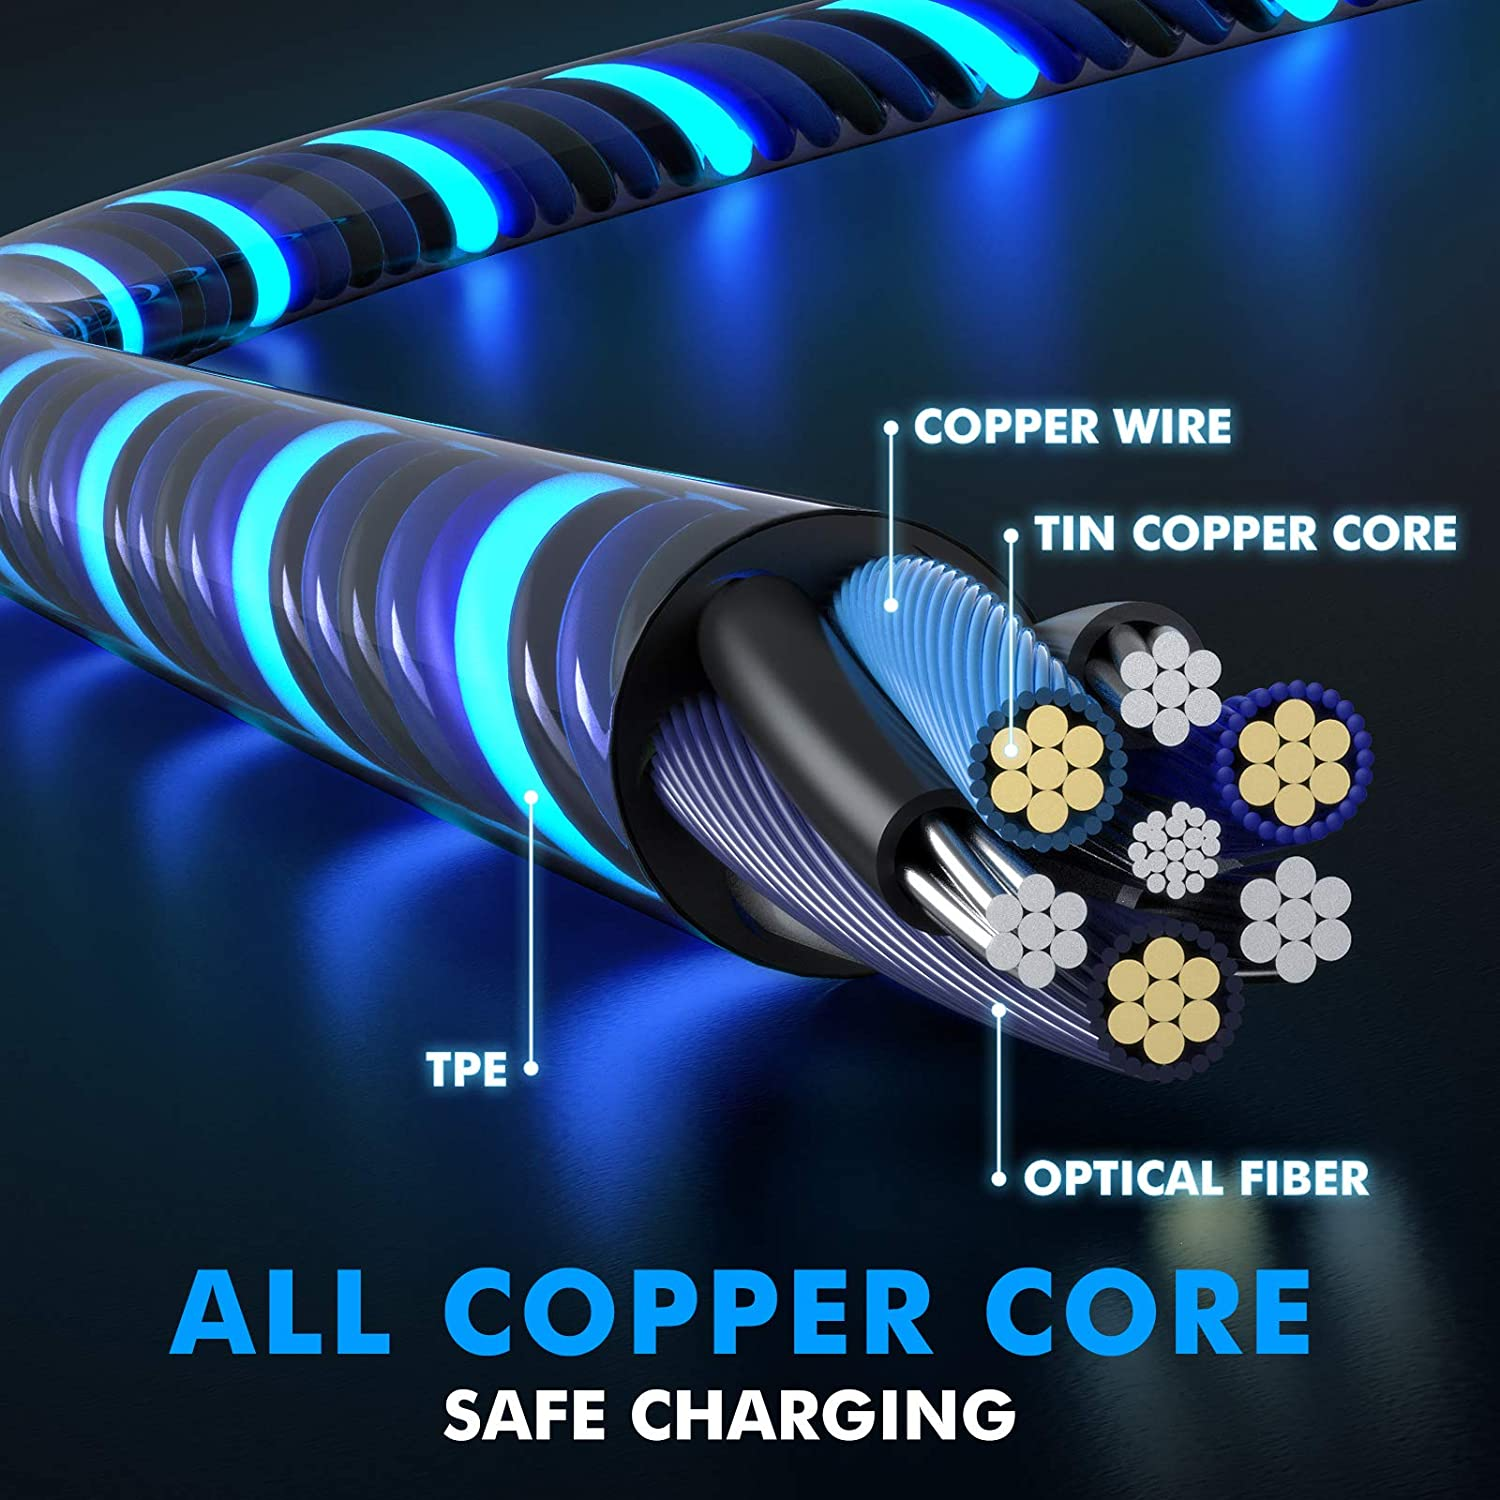 Type C charger Cable, 2 in 1 USB A to USB C/Lighting Cable 3A Fast Charging 3.3ft Lightning Charging Cords (Blue)